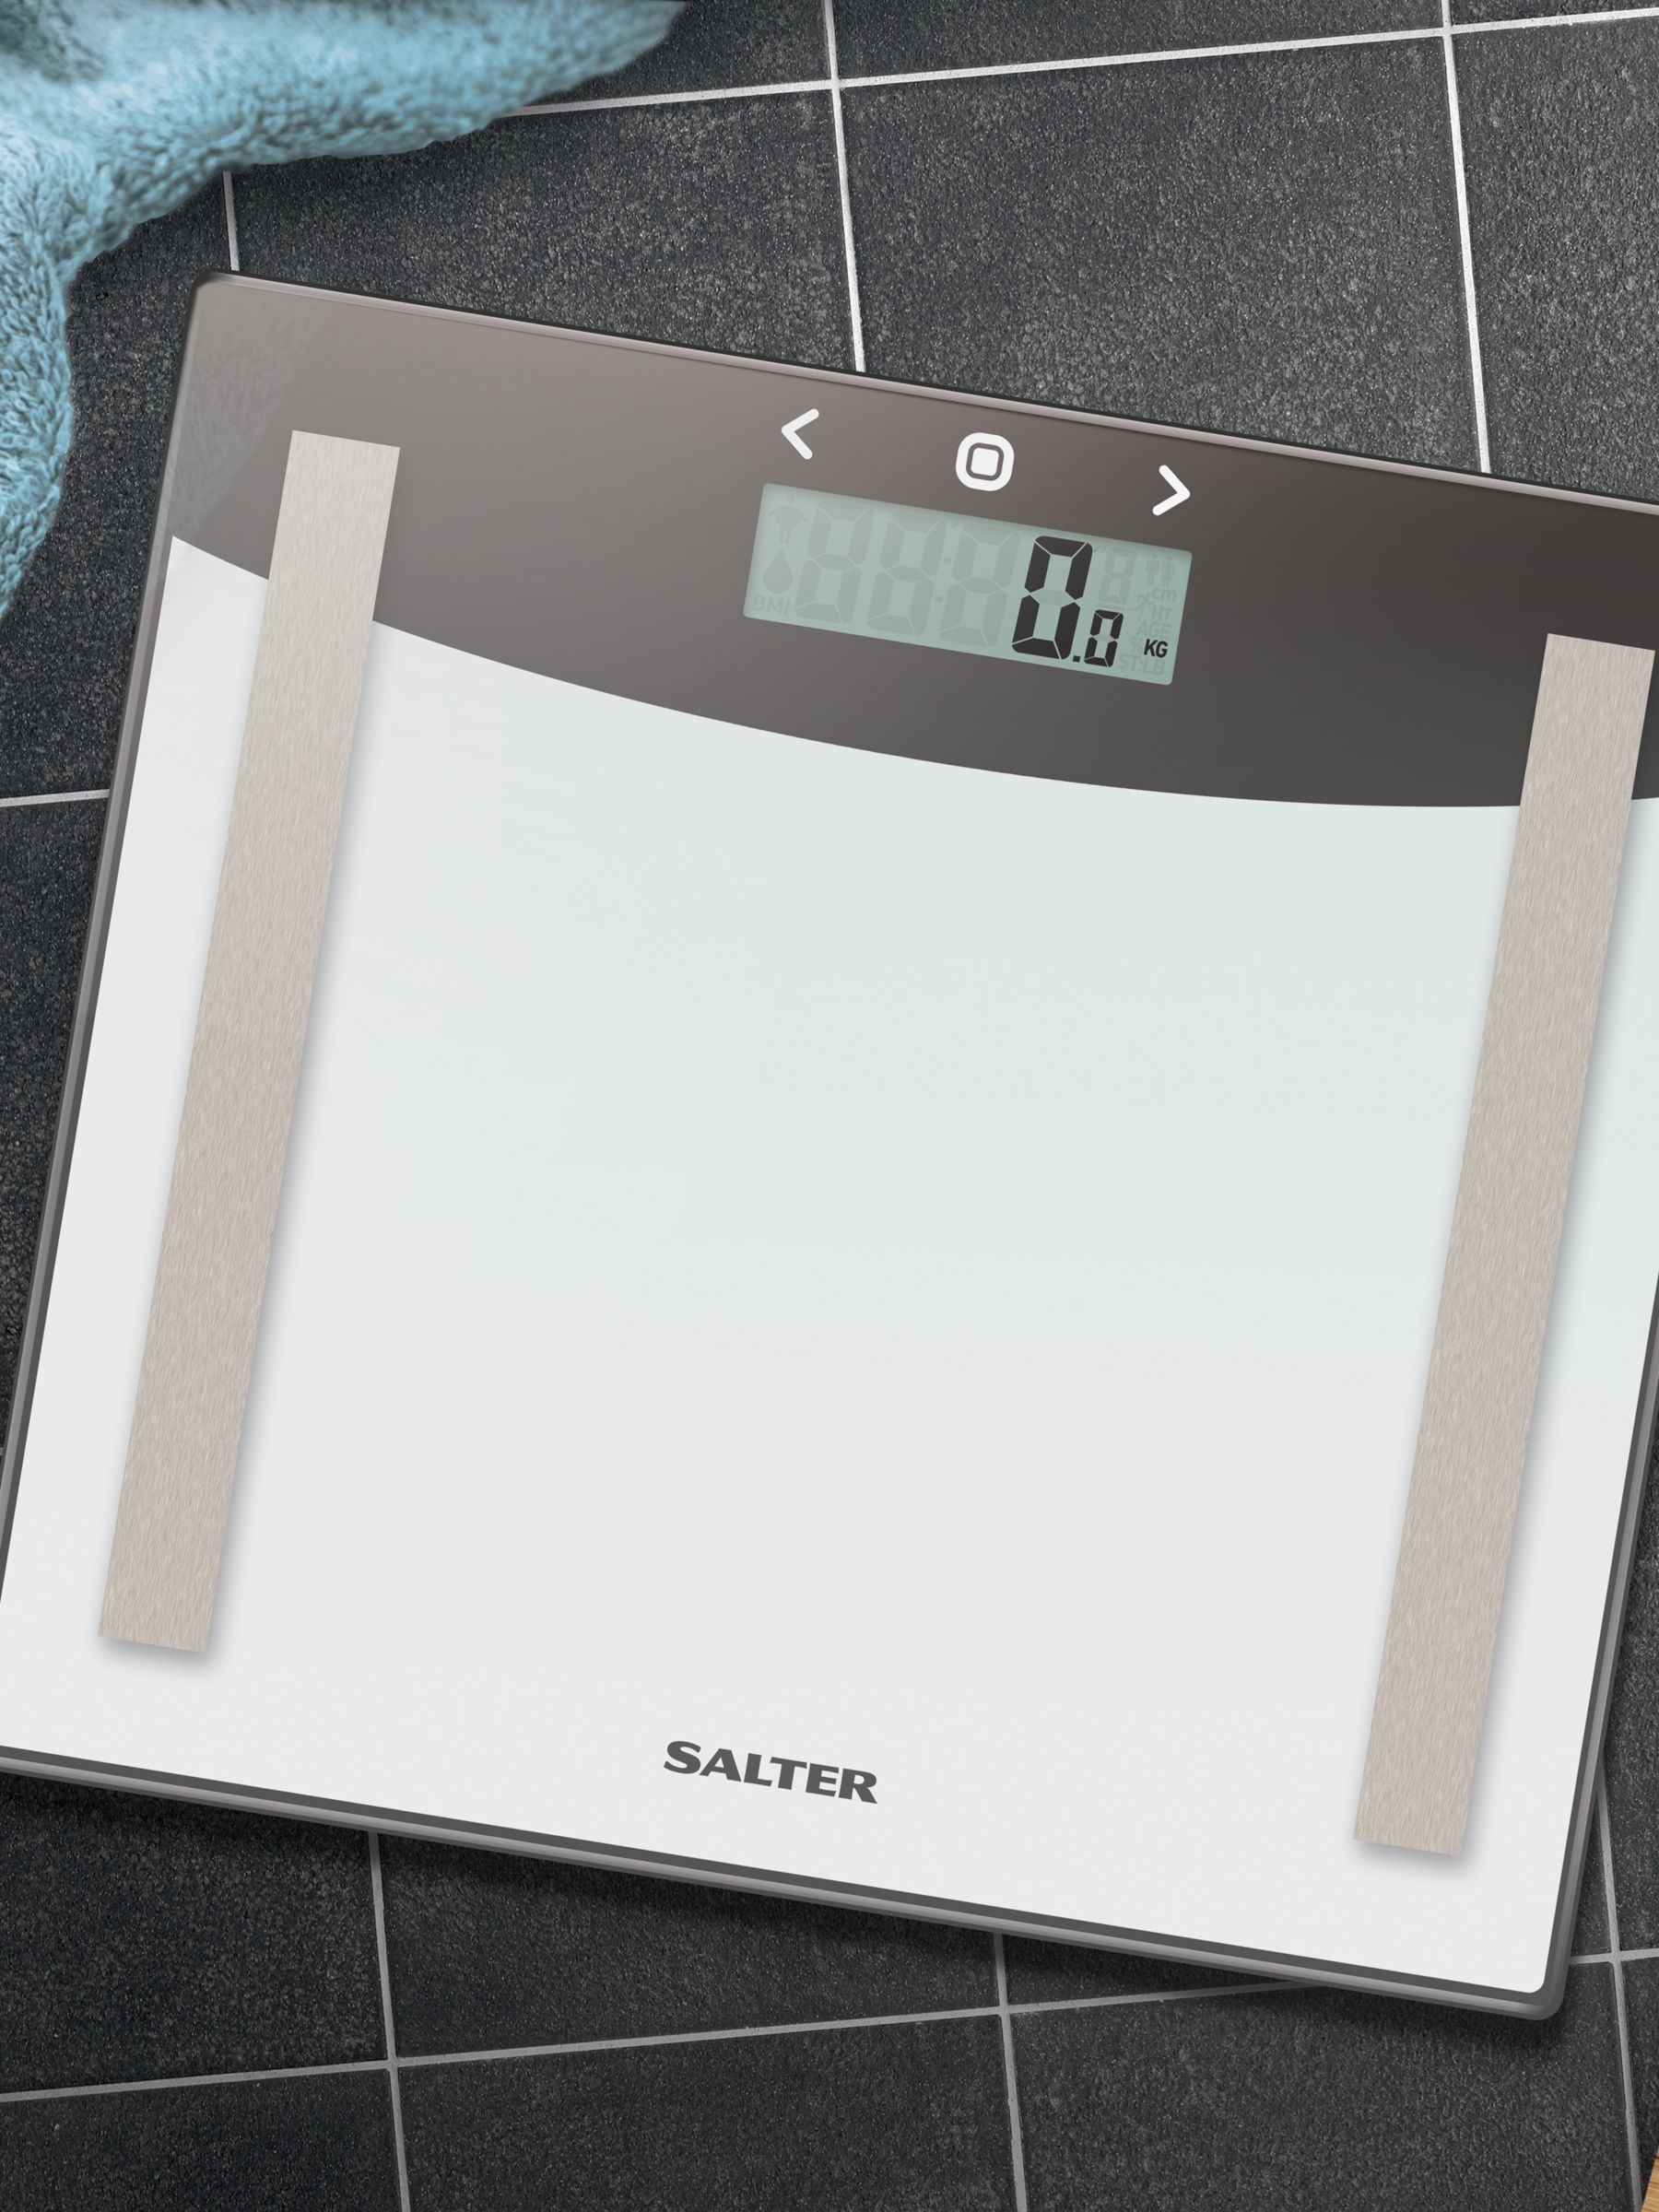 Salter Glass Body Analyser Bathroom Scale Scale Glass Simple Designs